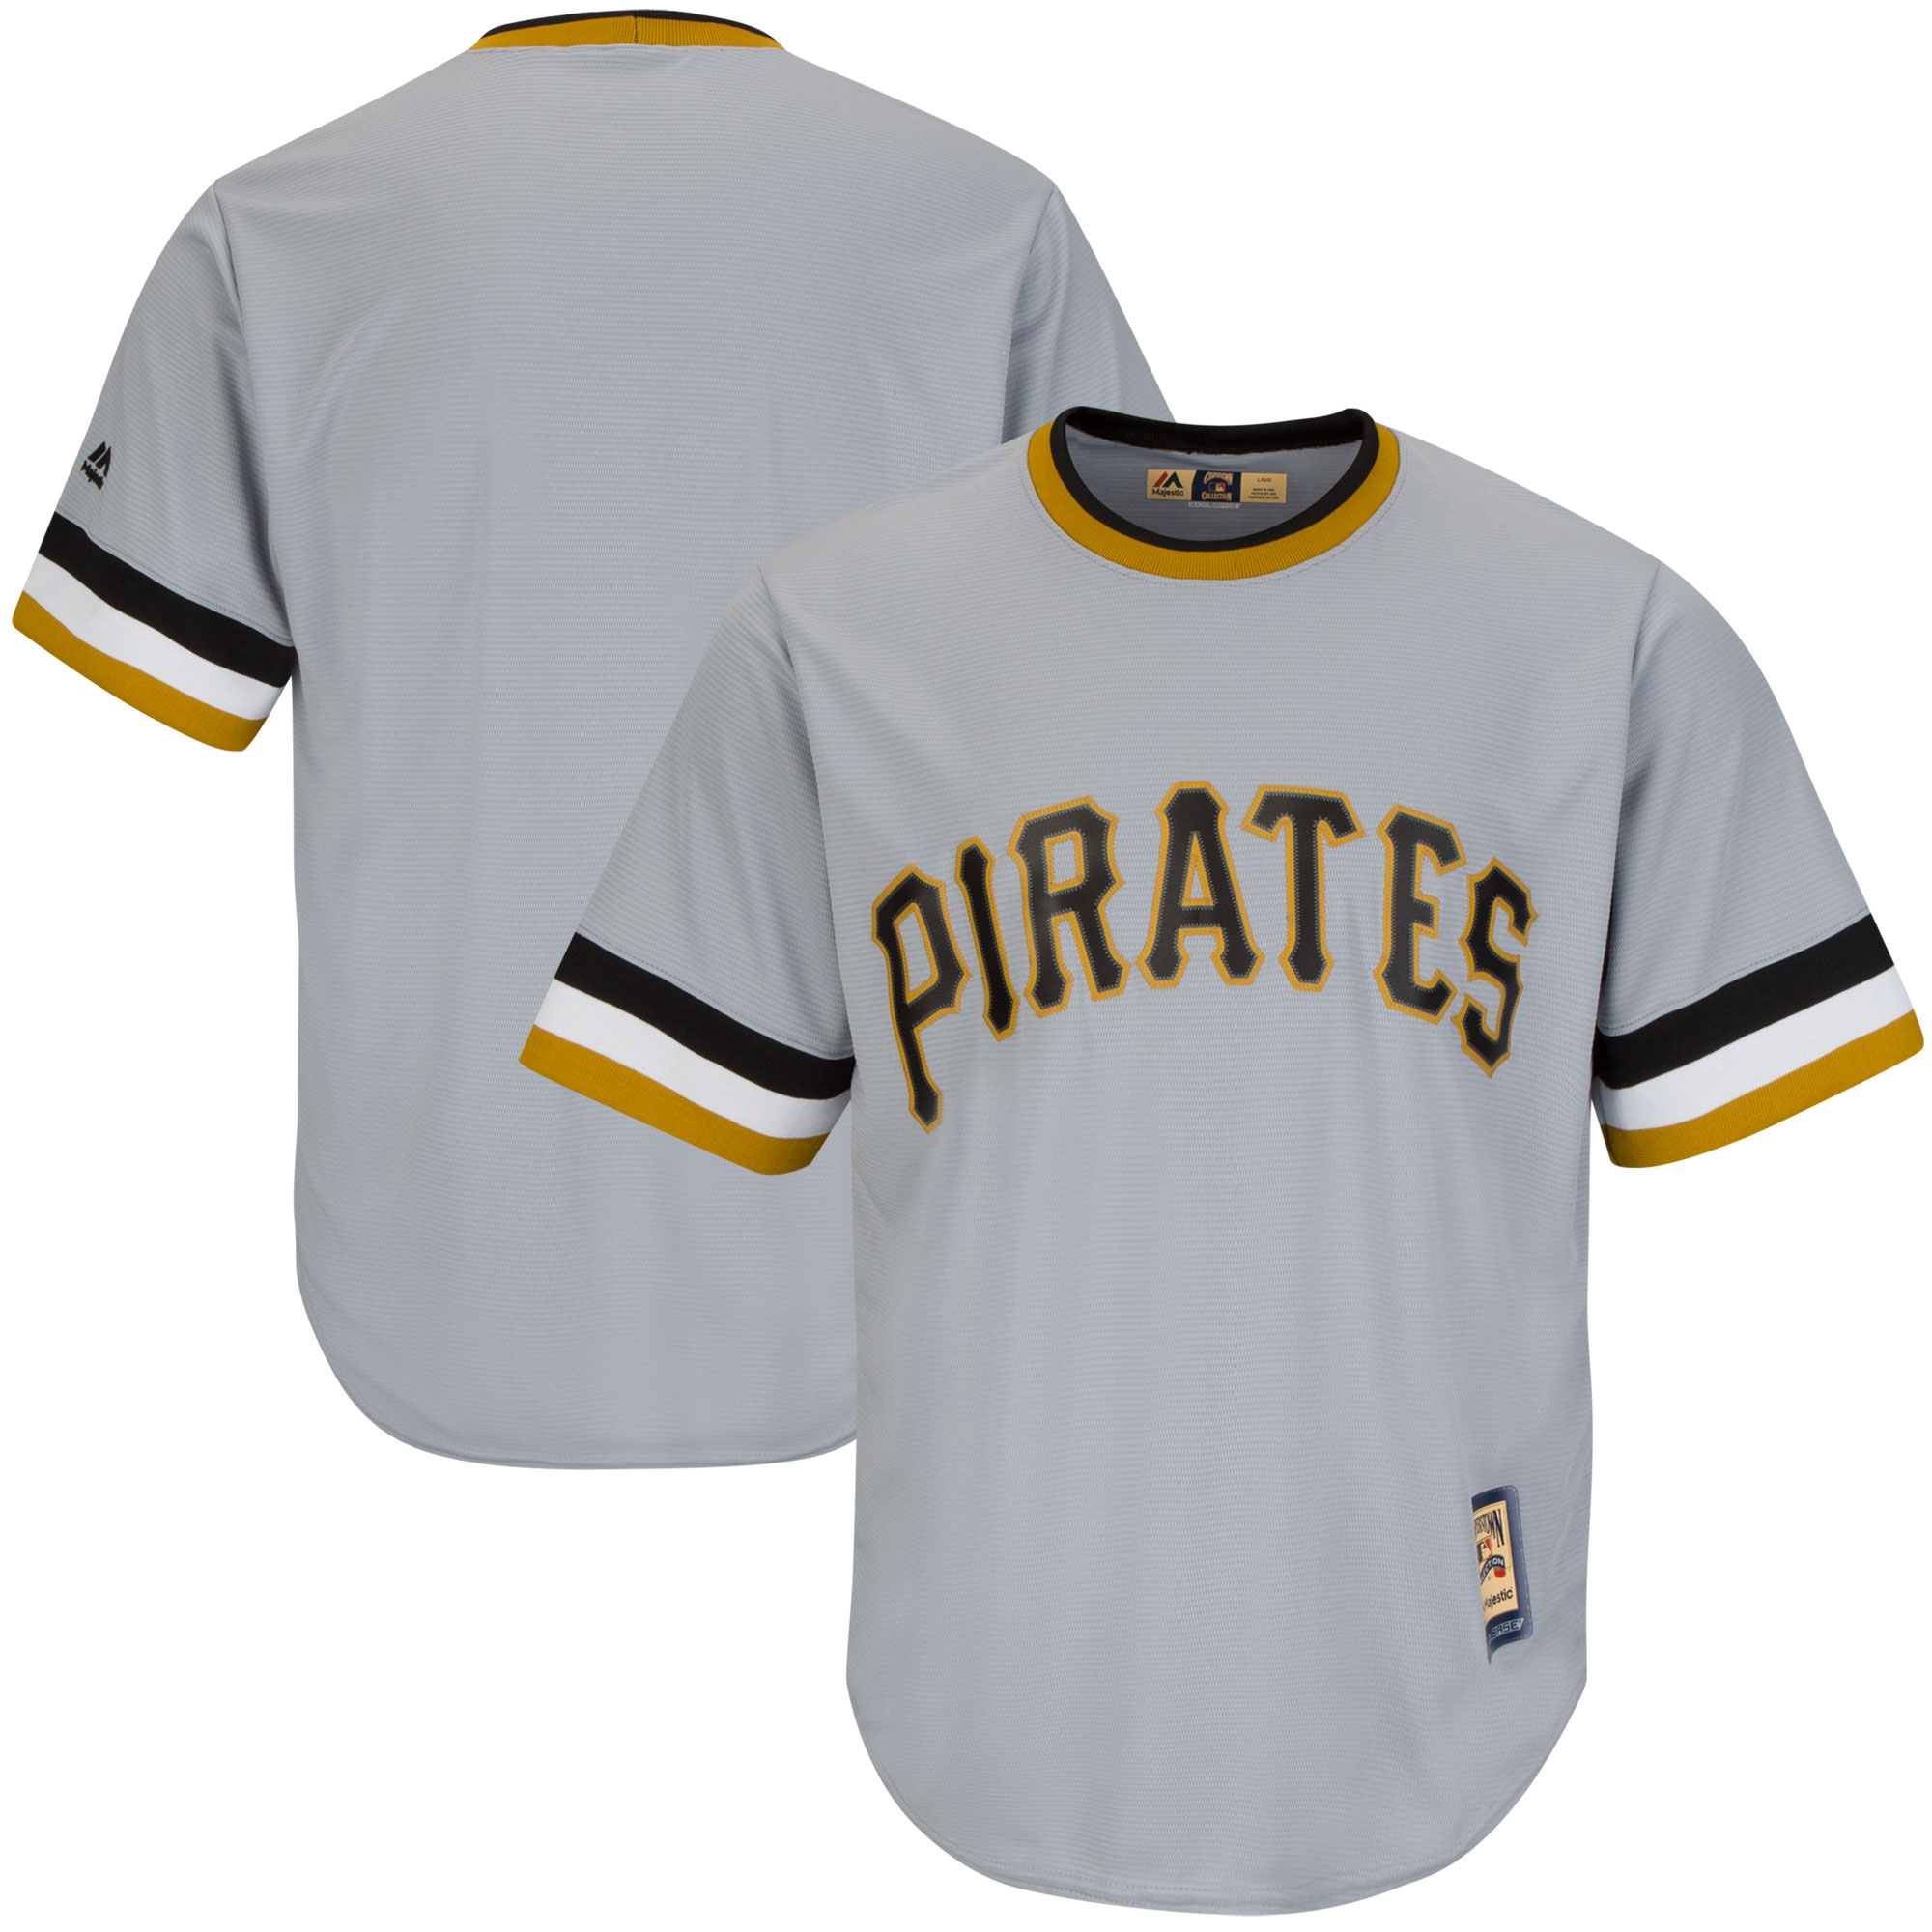 Pittsburgh Pirates Majestic Big & Tall Cooperstown Cool Base Jersey Gray by Profile